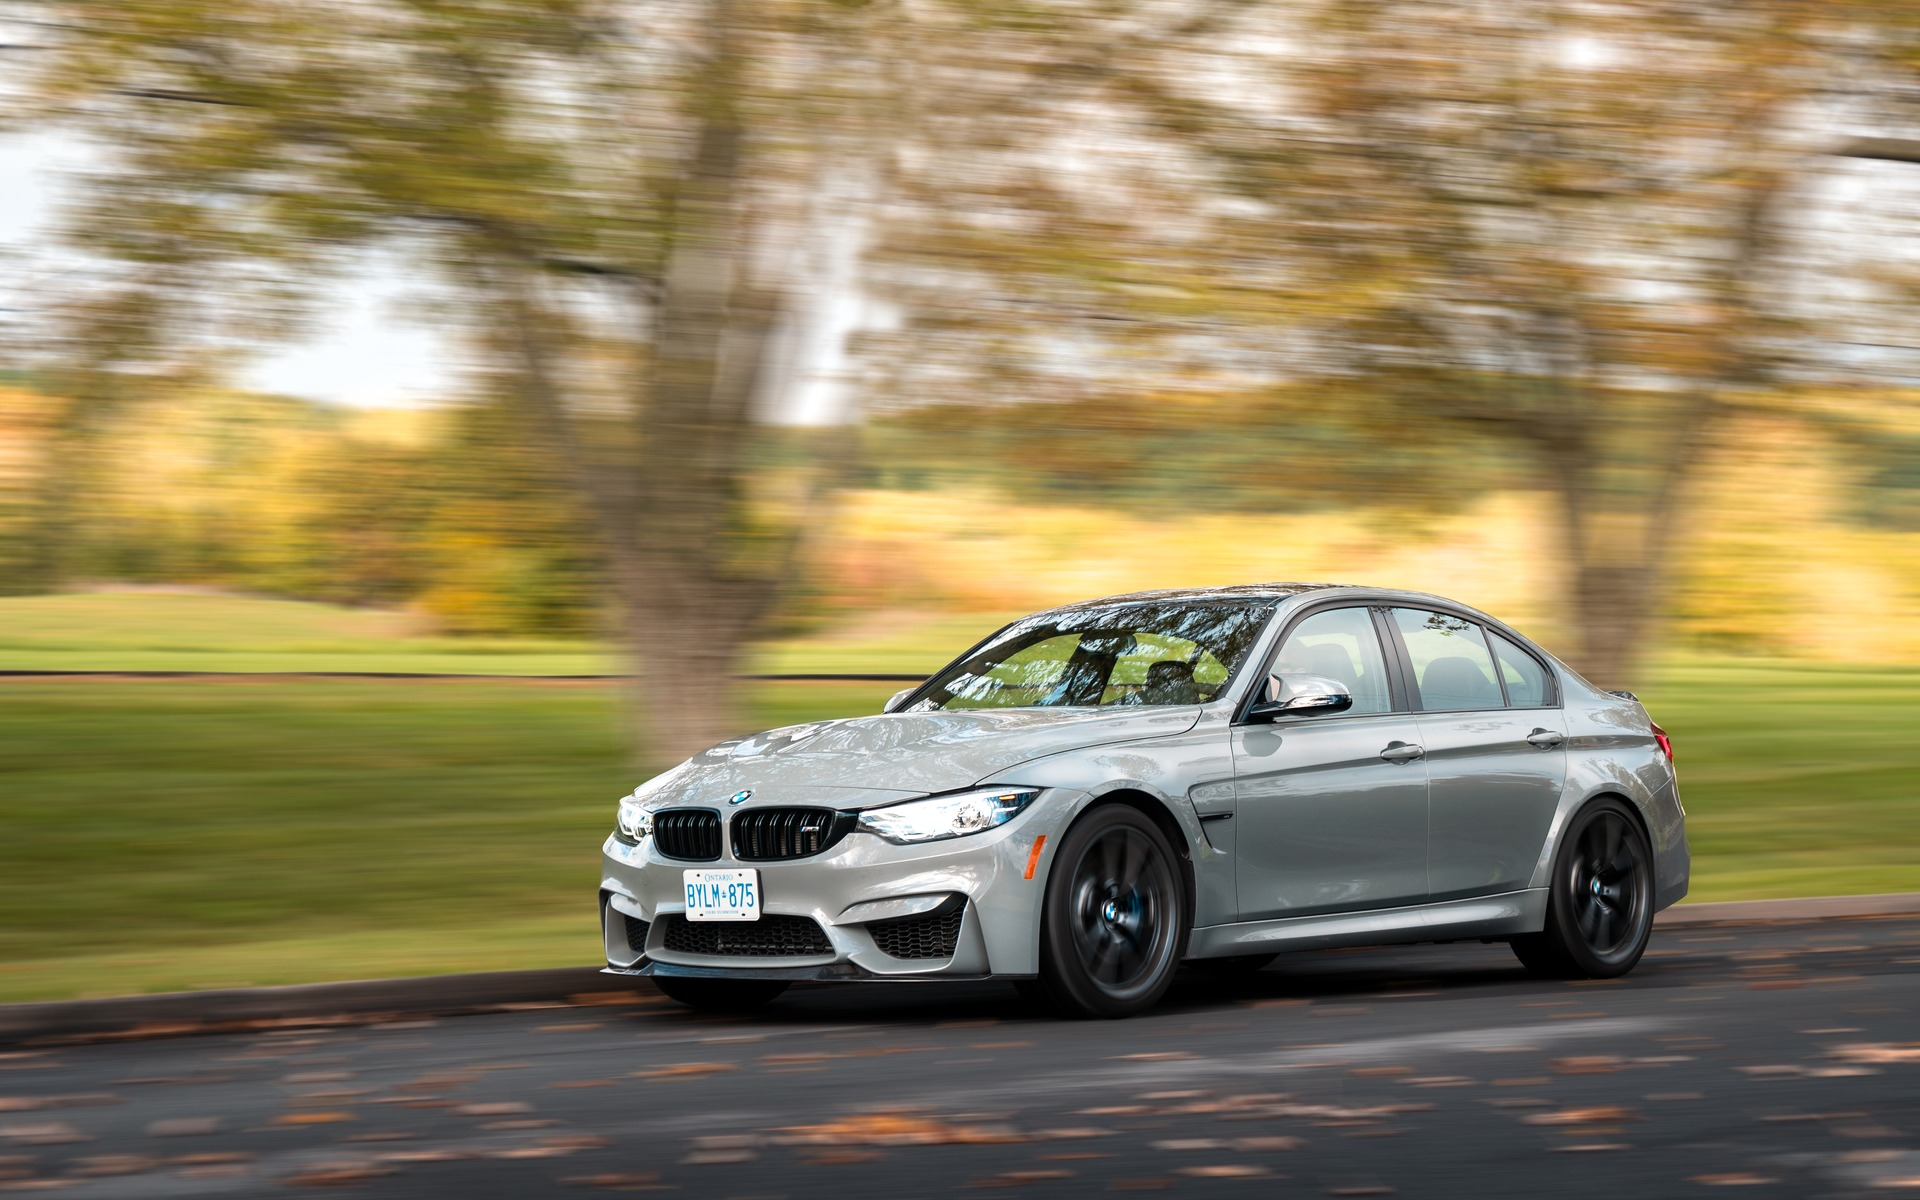 2018 Bmw M3 Cs One Last Brilliant Flash Of Speed The Car Guide